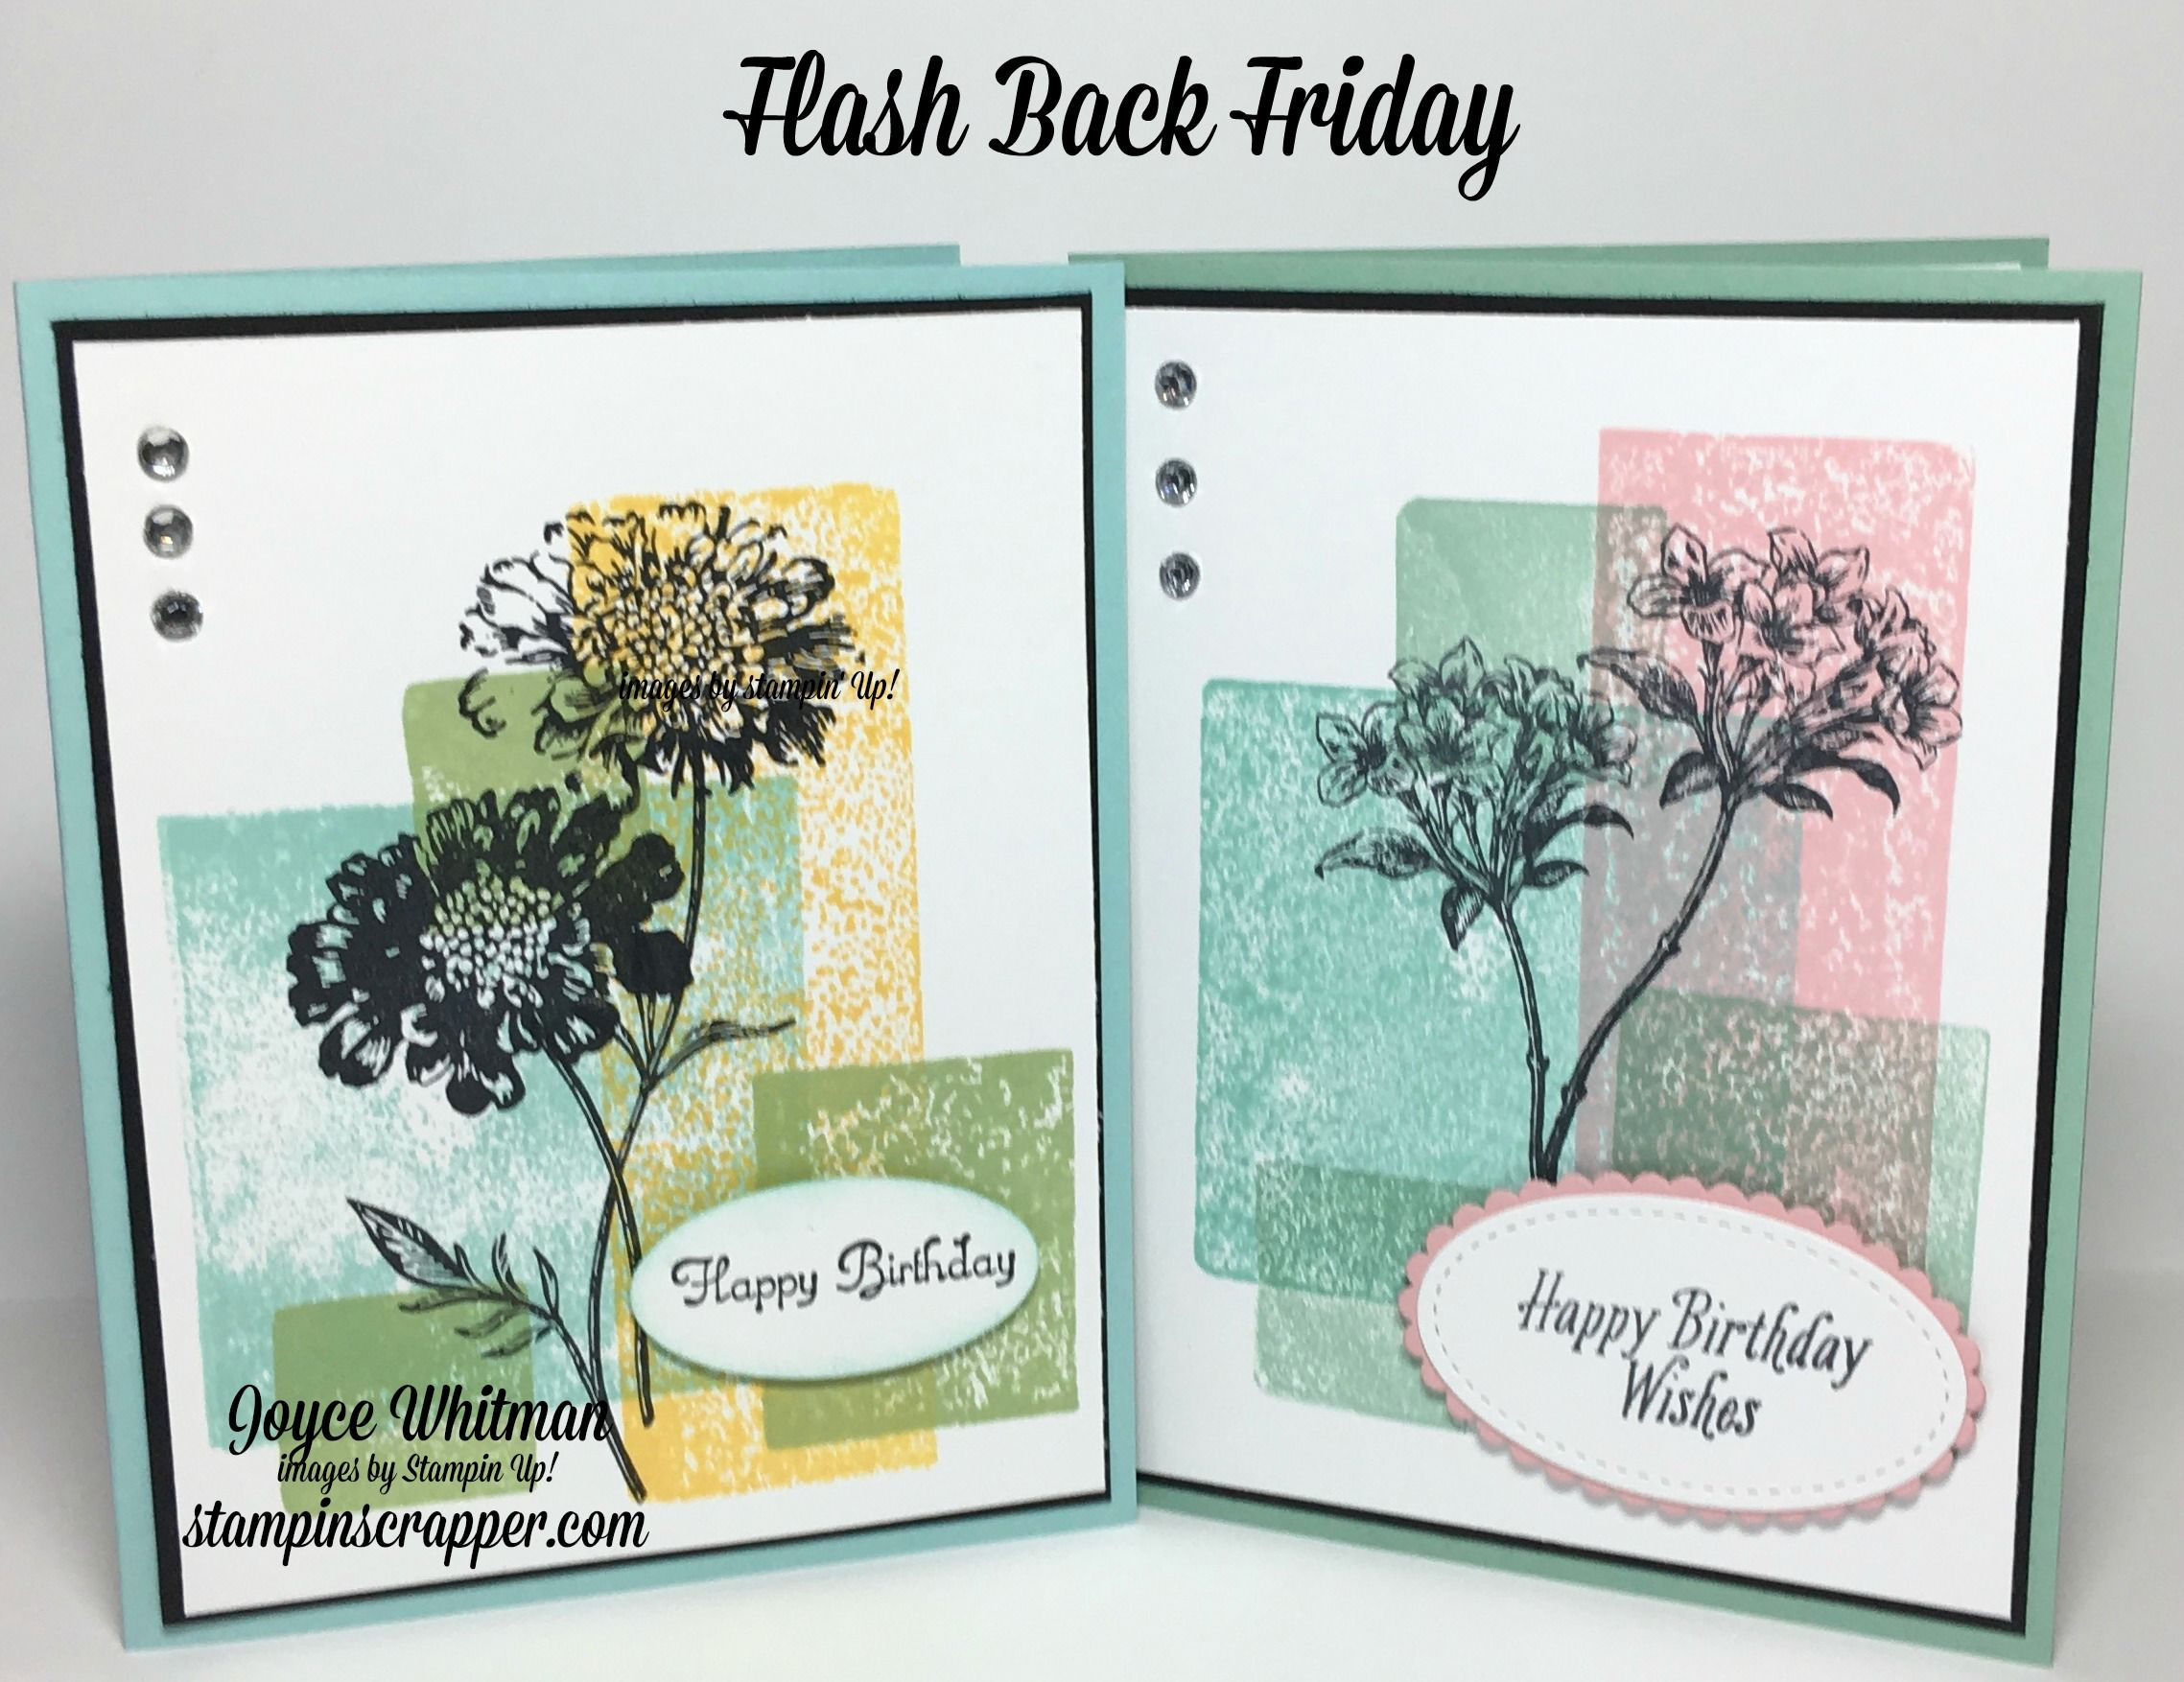 Flash back friday with avant garden birthdays cards and card ideas